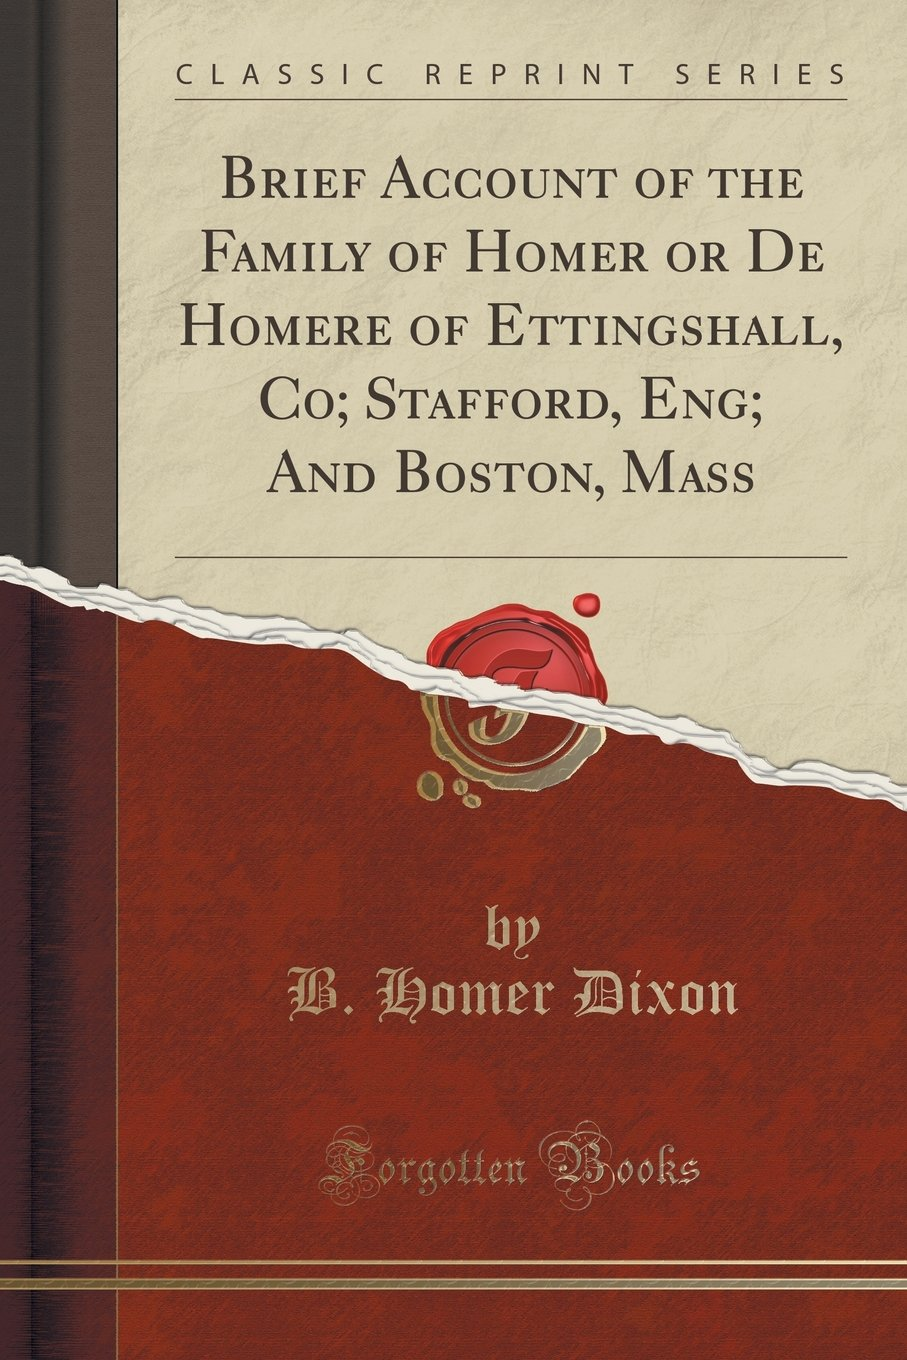 Brief Account of the Family of Homer or De Homere of Ettingshall, Co; Stafford, Eng; And Boston, Mass (Classic Reprint) pdf